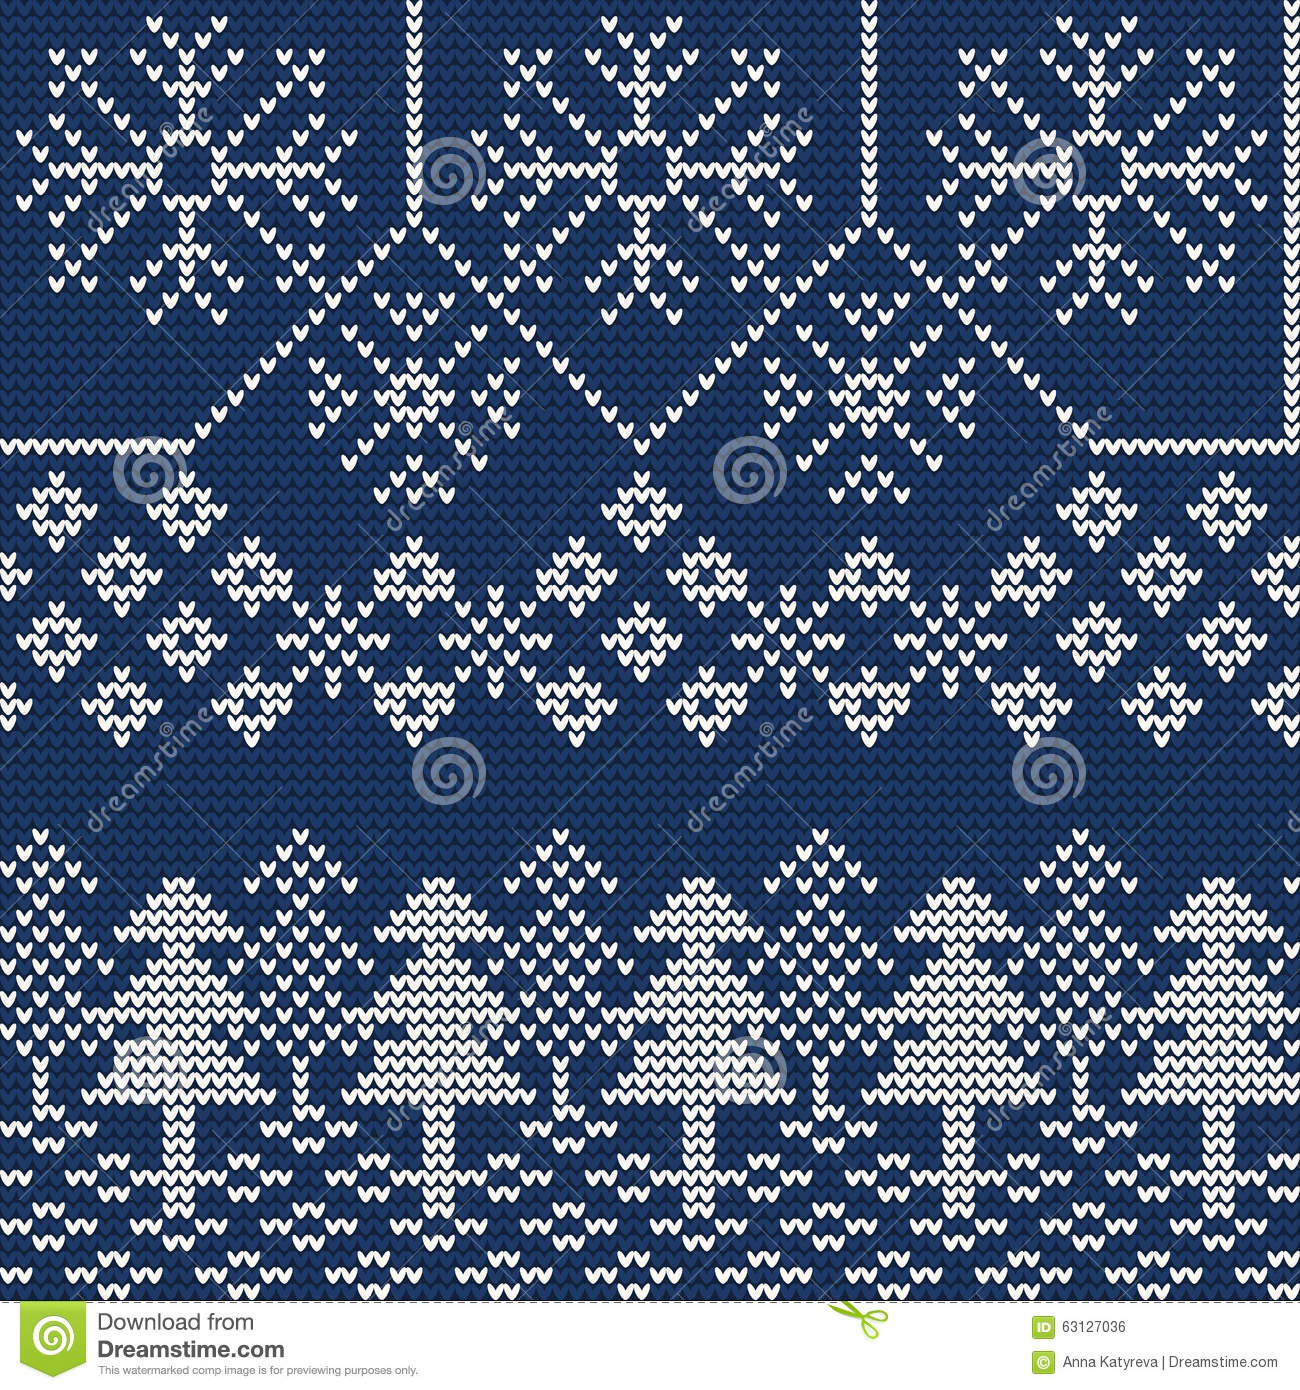 Ugly Sweater Background 1 Stock Vector - Image: 63127036